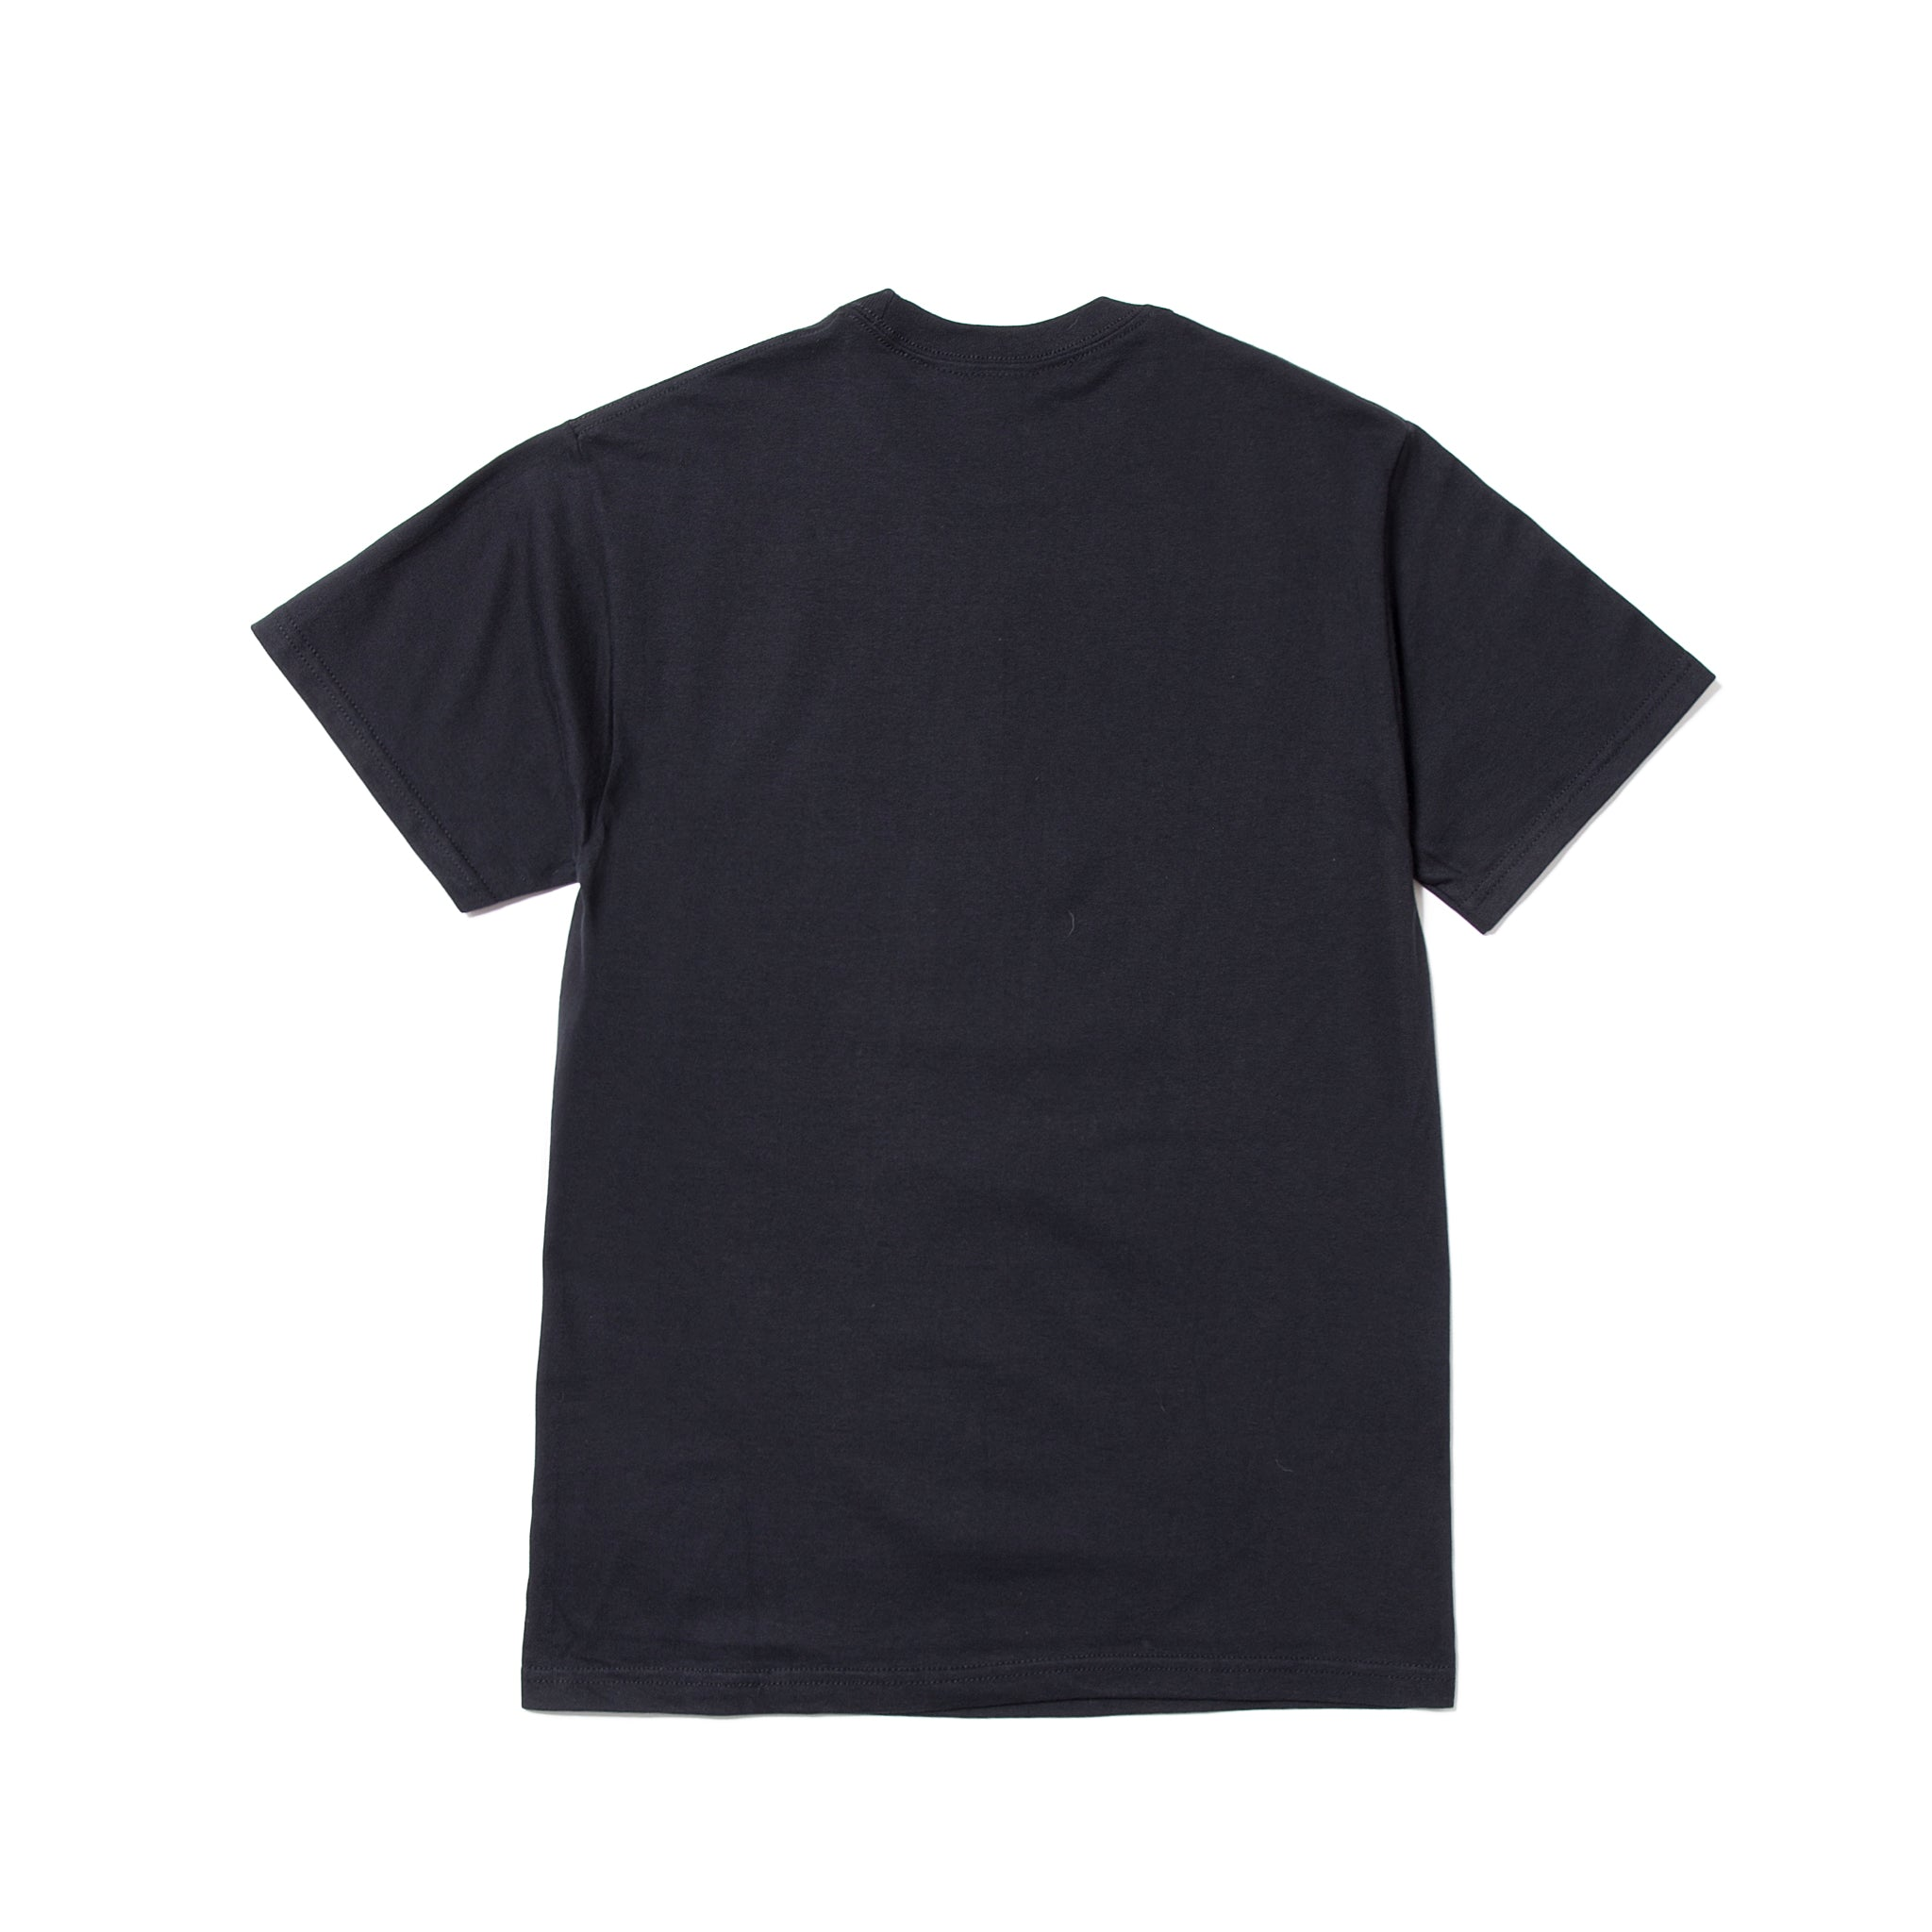 This is not a toy S/S T-Shirt - Black